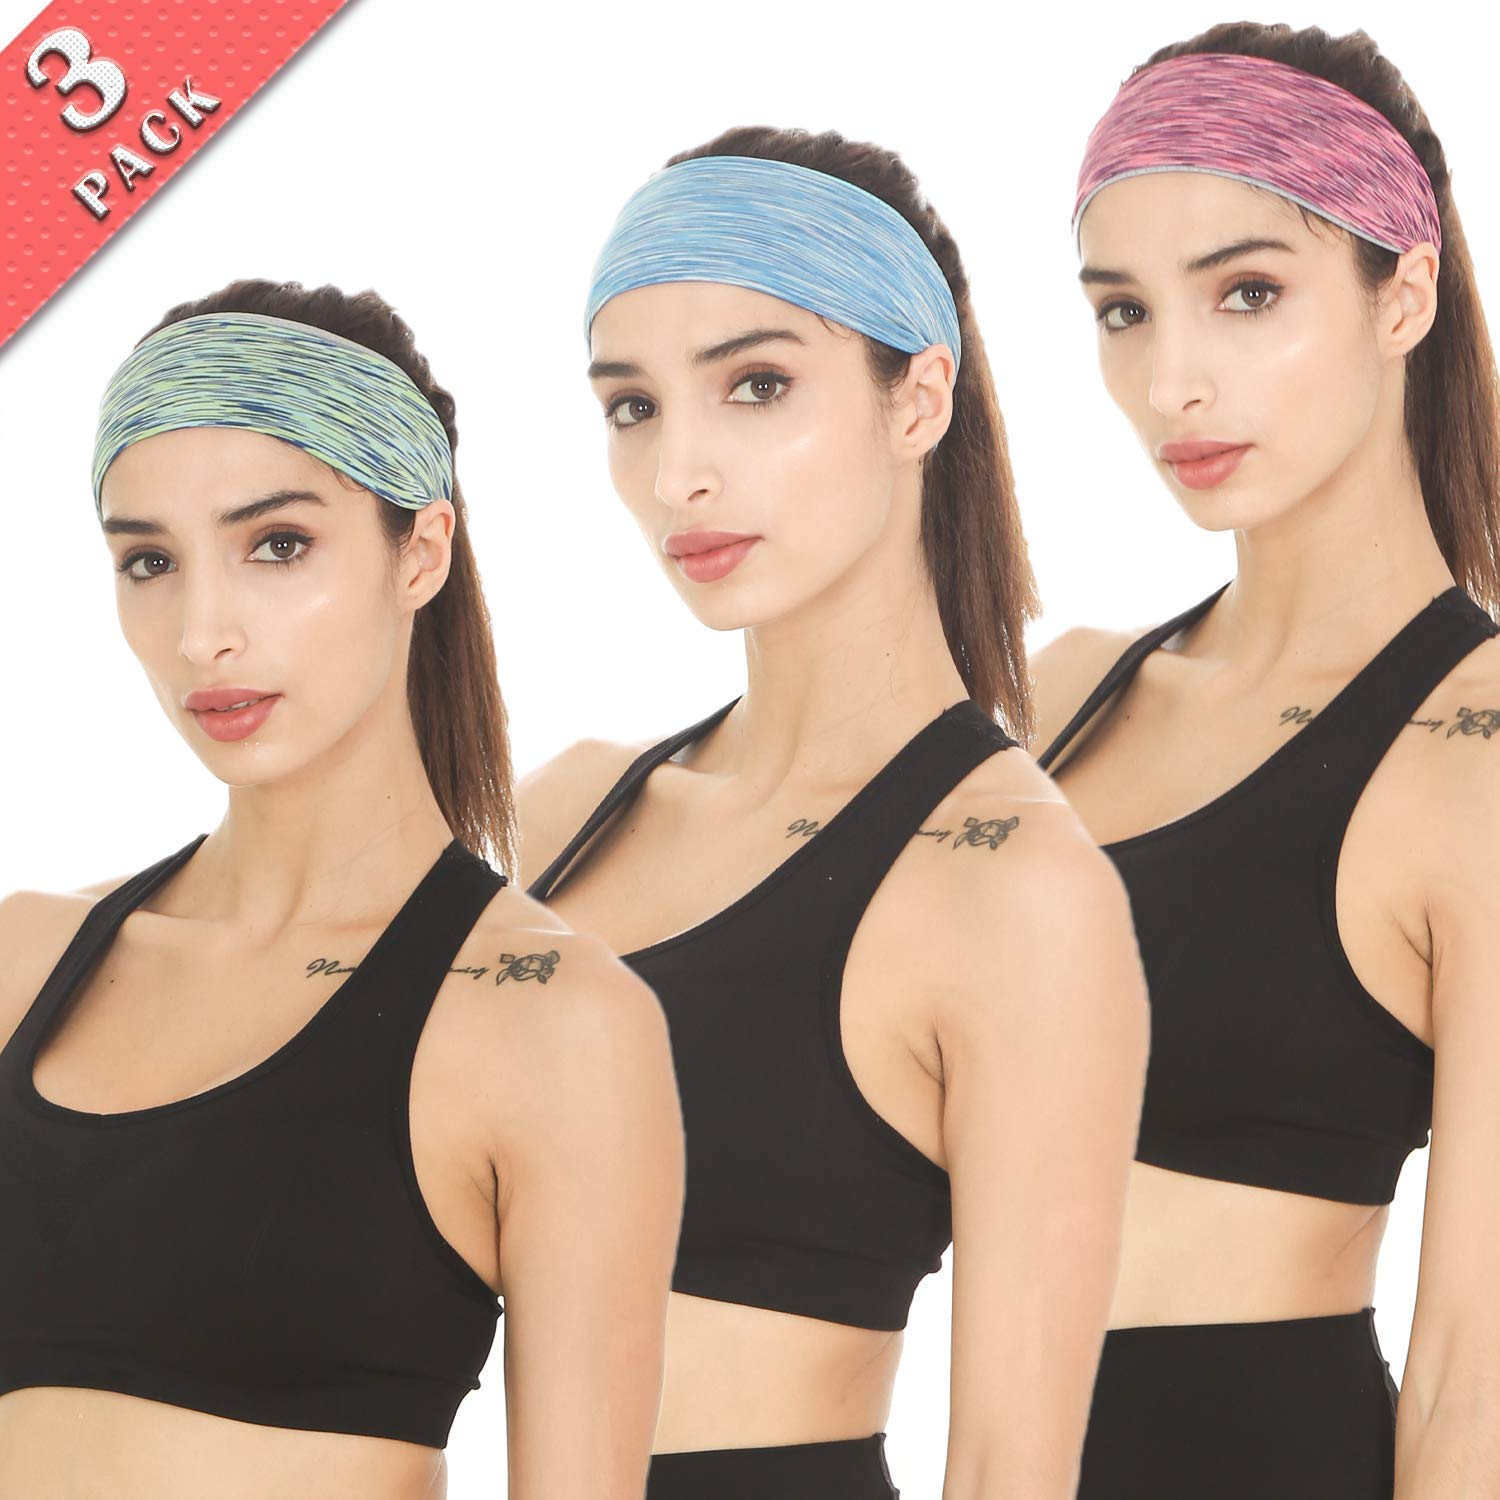 Braylin Women's Headbands, 3 Pack Sweat Workout Headbands for Women, Sport Cooling Headbands for Running Crossfit Fitness Yoga Cycling Hiking, Elastic Sweat Wicking Non Slip